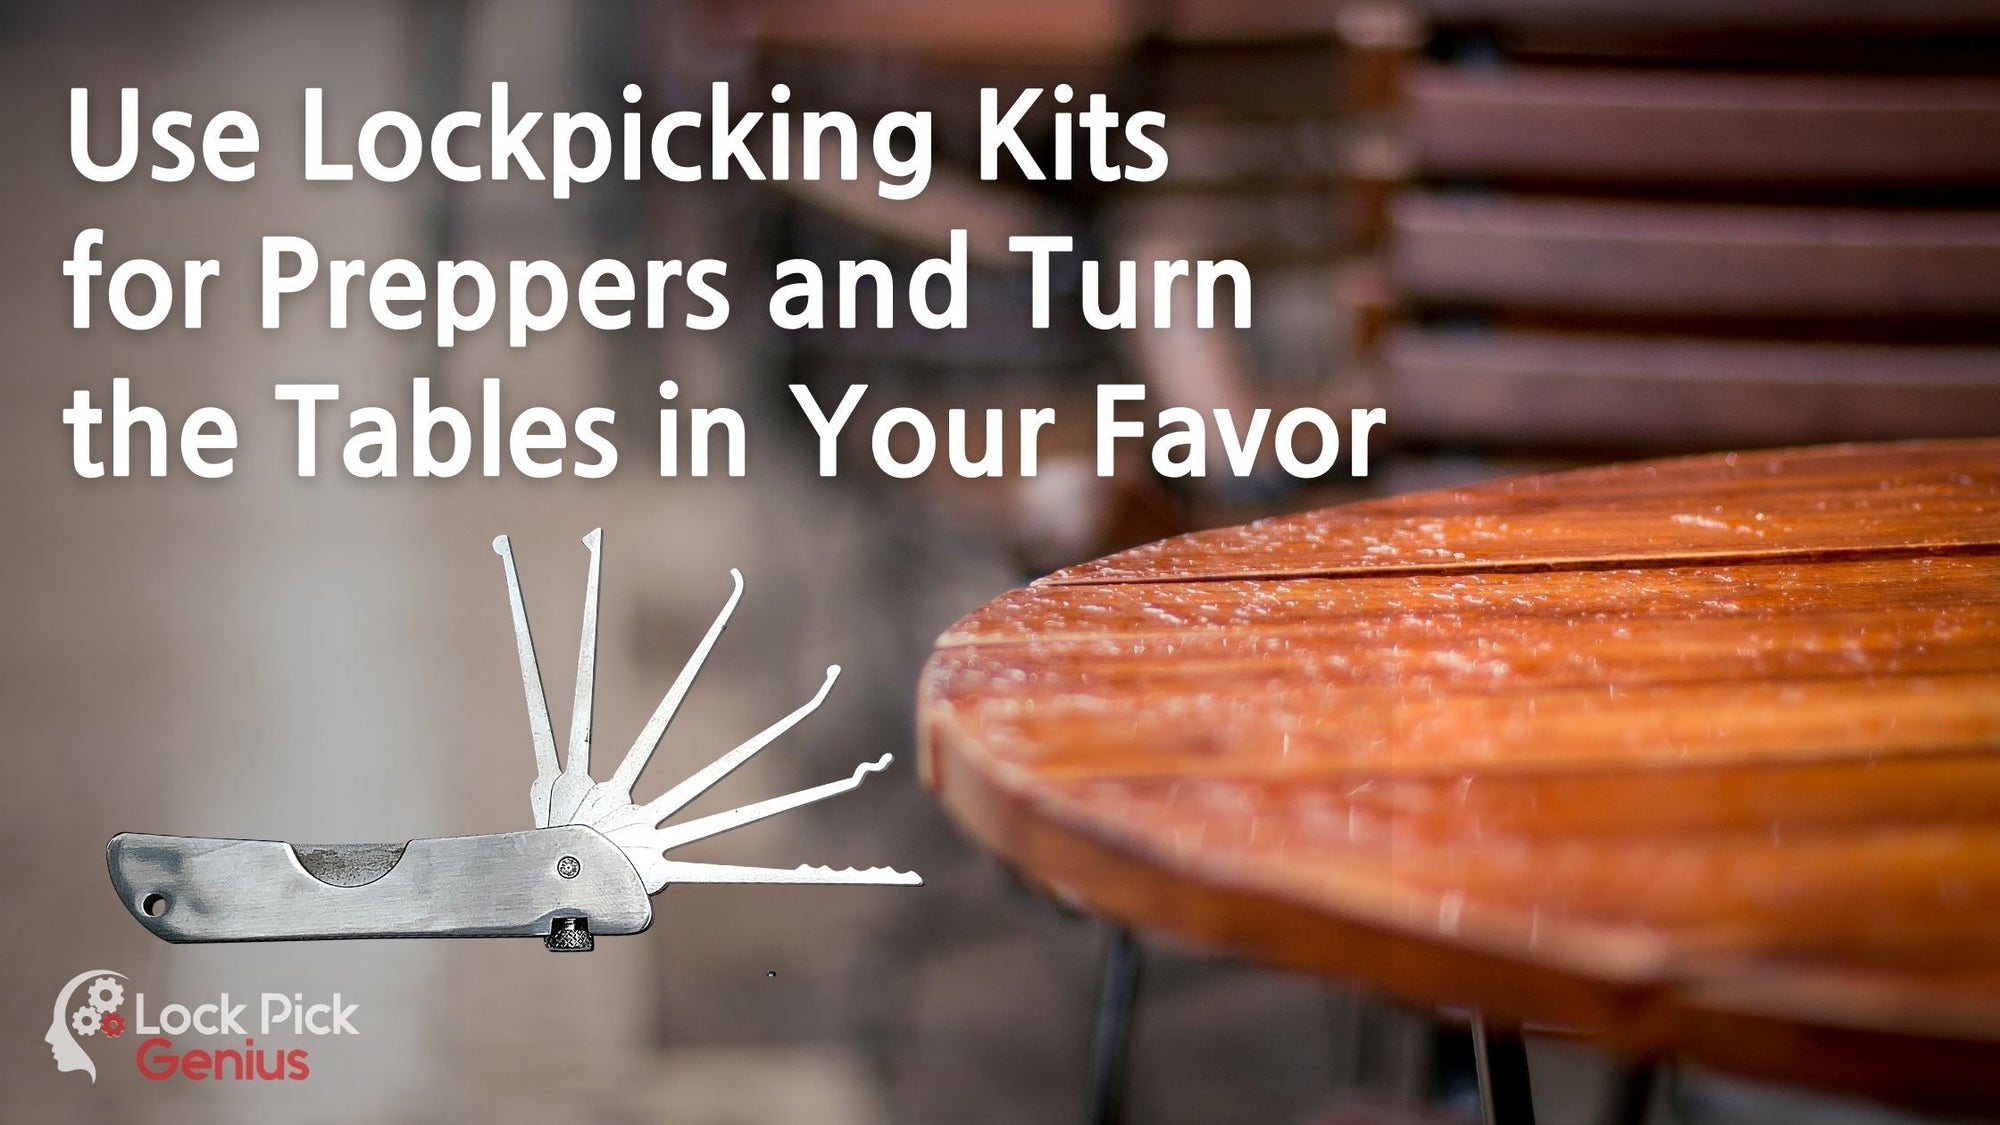 Use Lockpicking Kits for Preppers and Turn the Tables in Your Favor